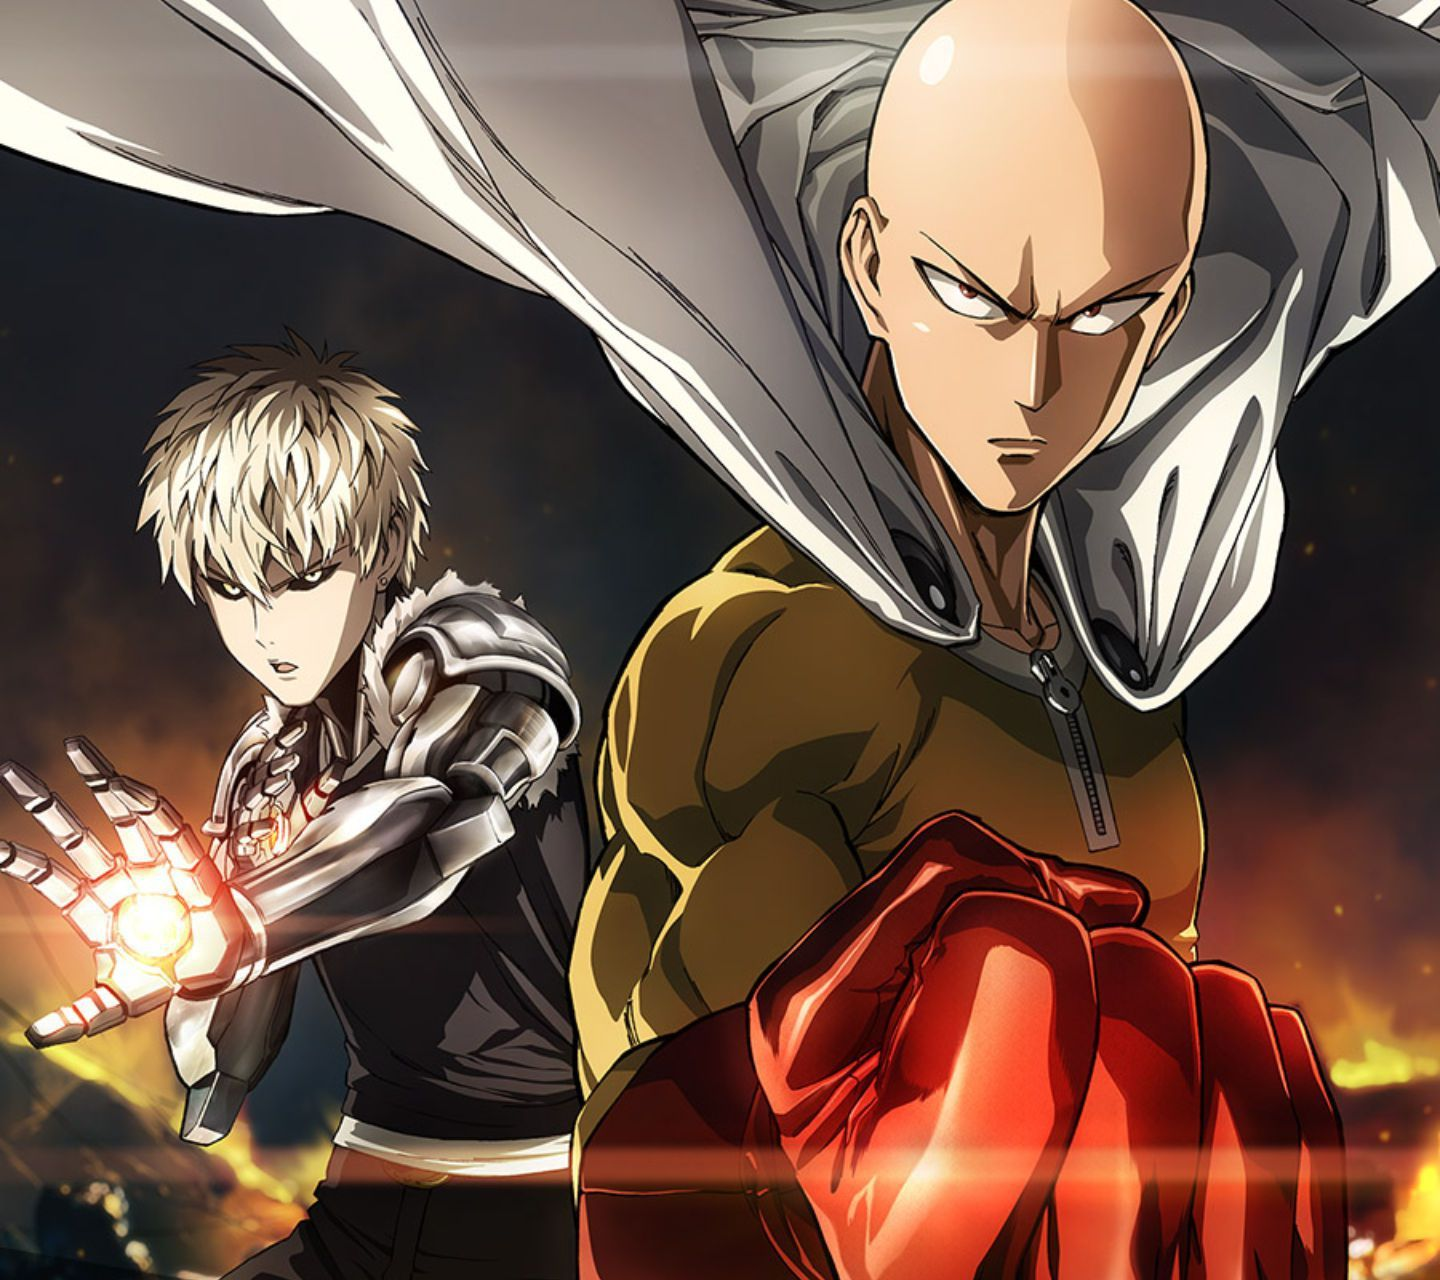 Free Download 24225 Onepunchman Android 1440x1280 For Your